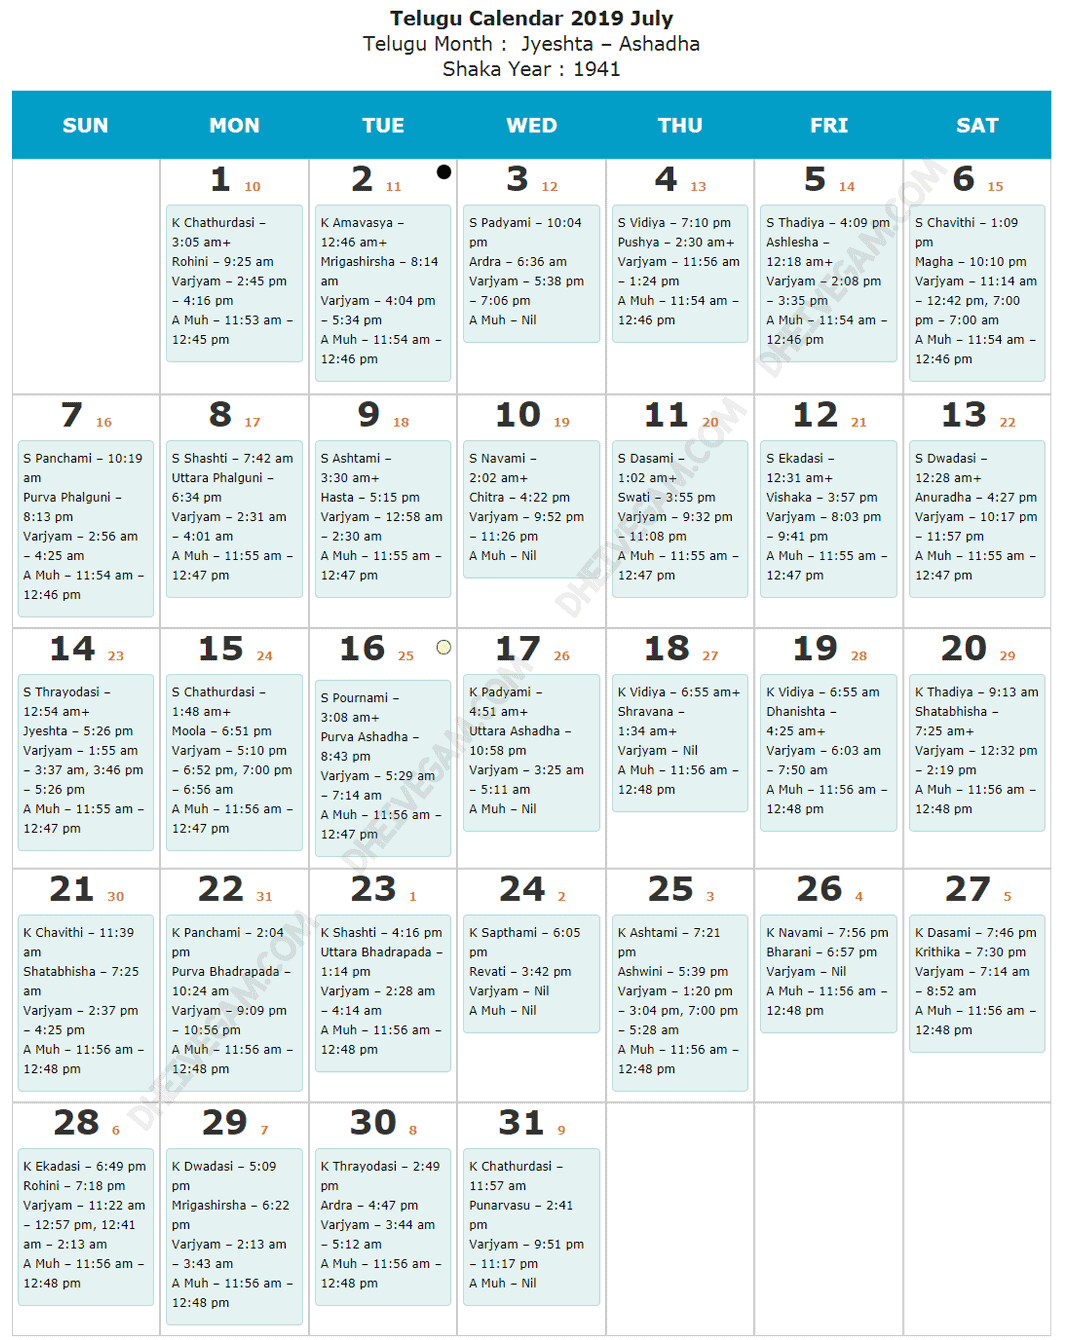 July 2019 Telugu calendar